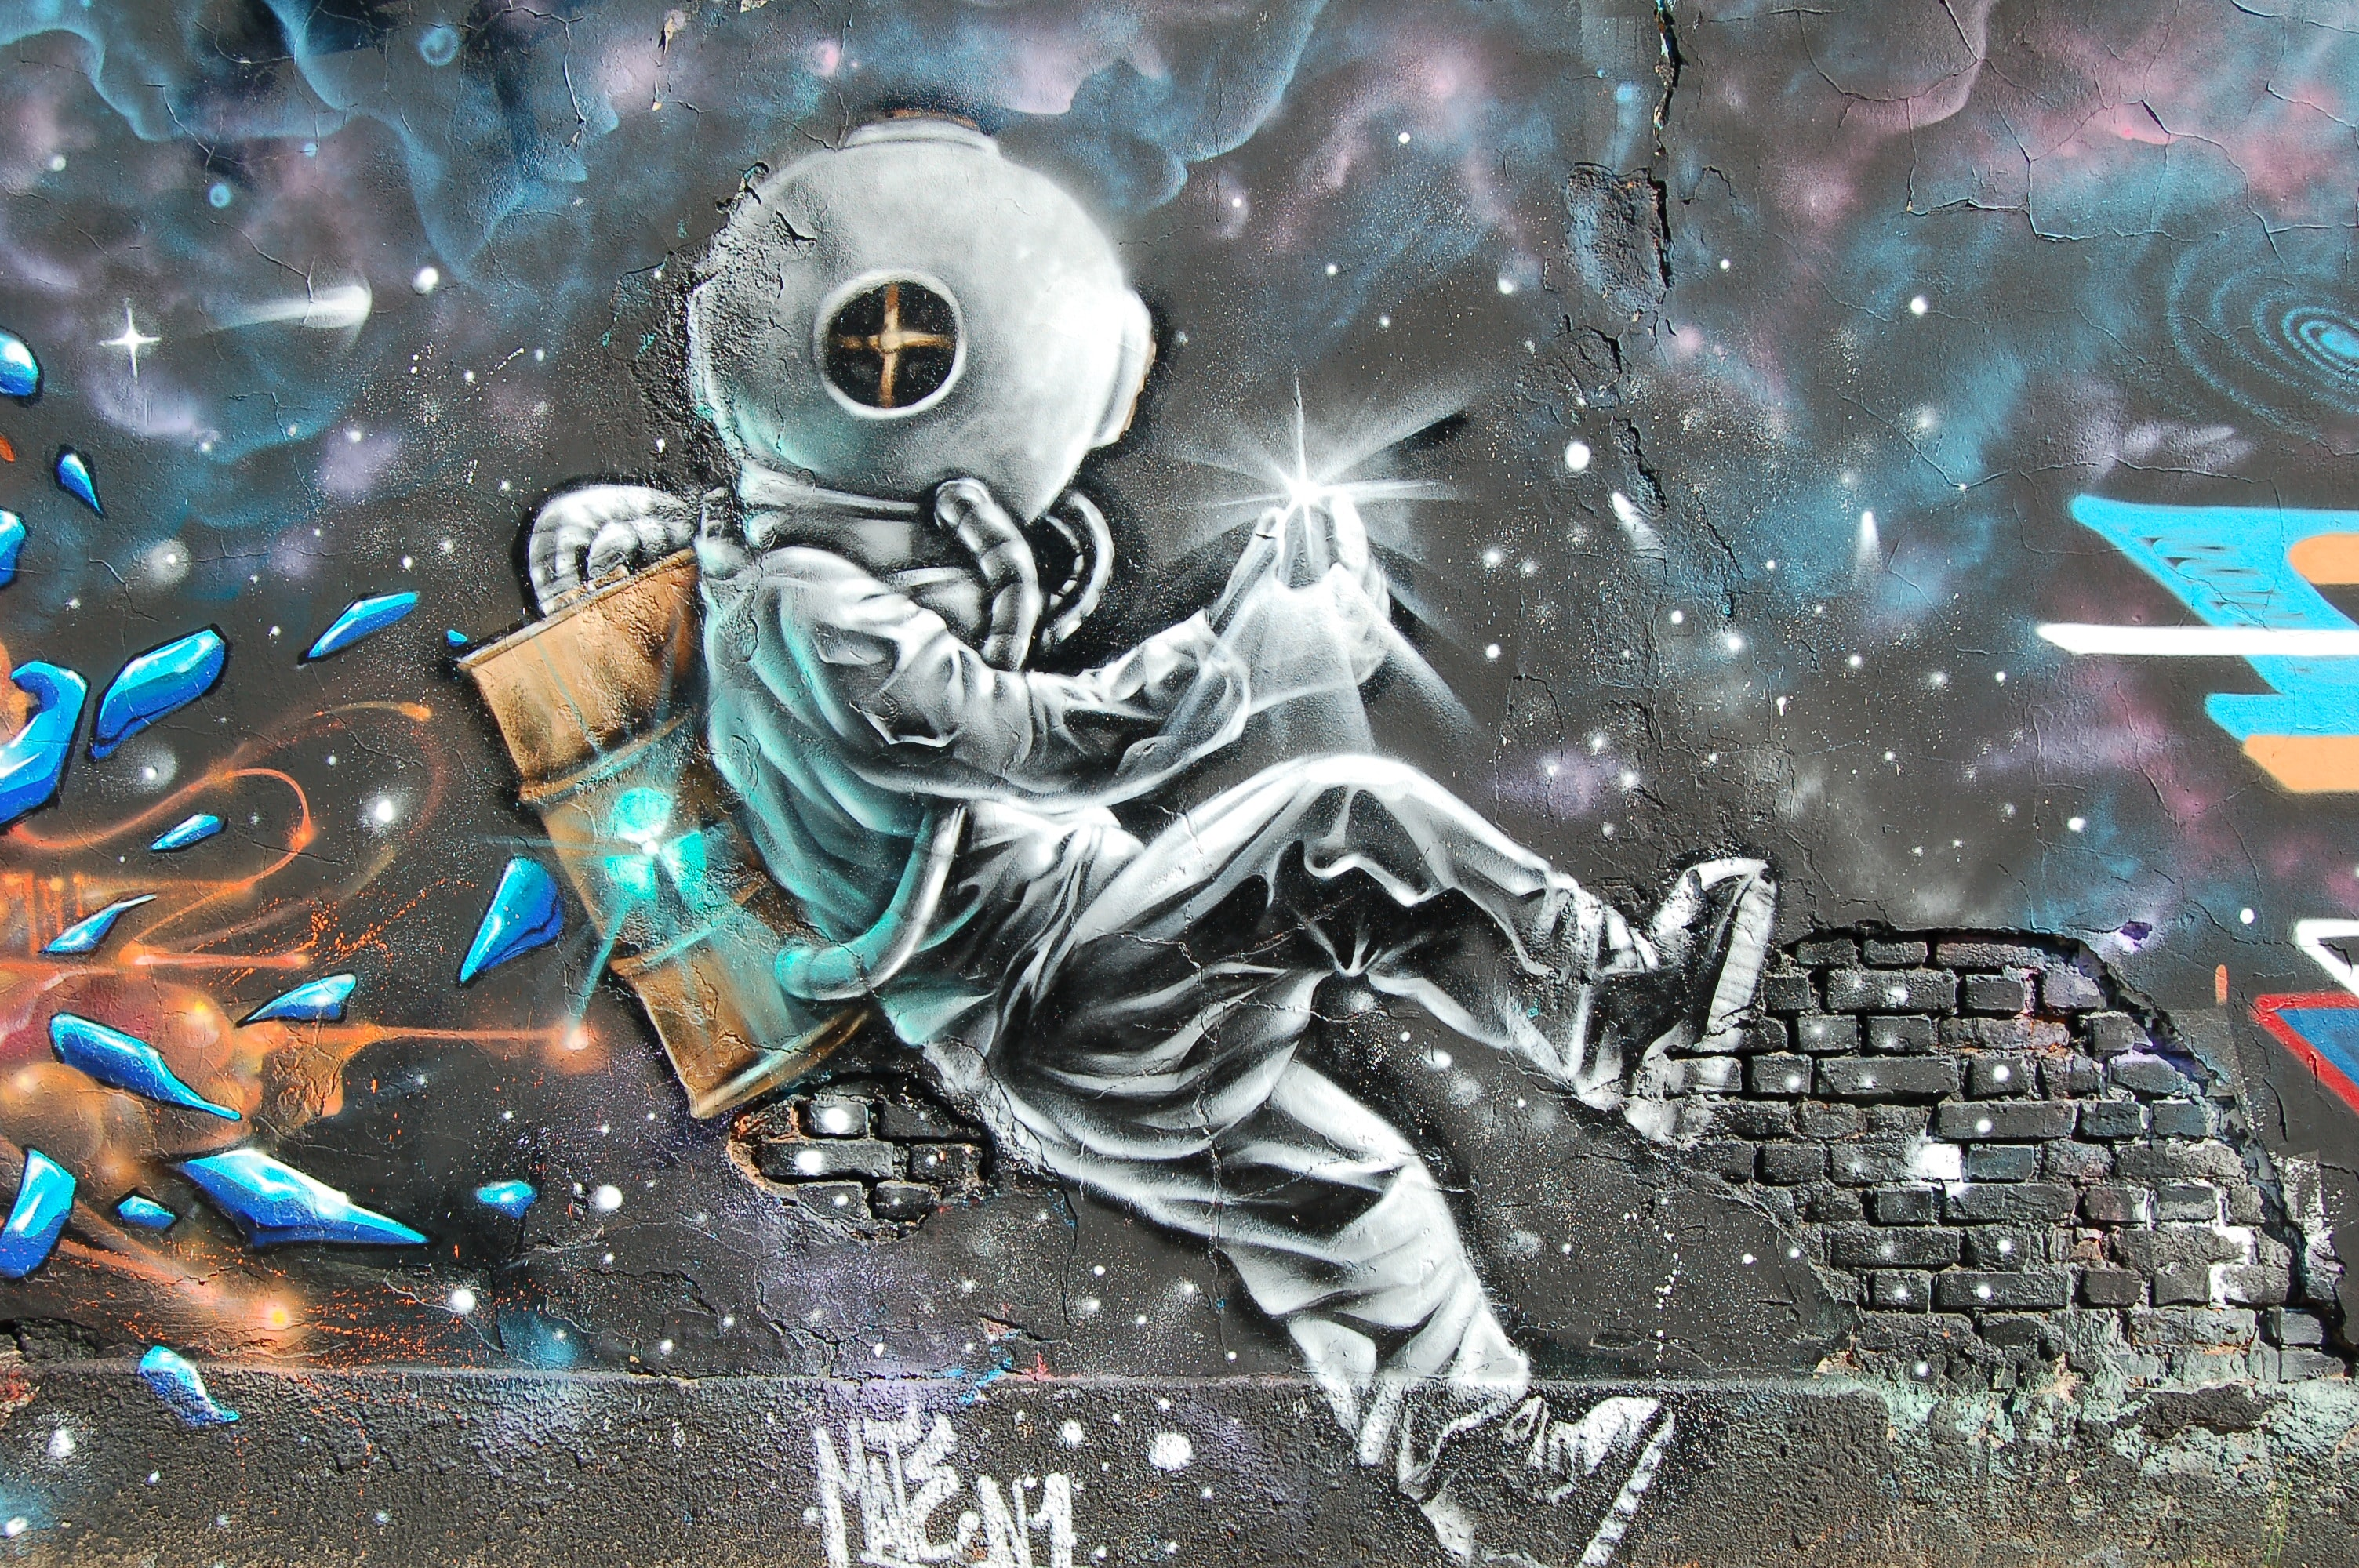 Graffiti art of an astronaut traveling through a colorful galaxy.